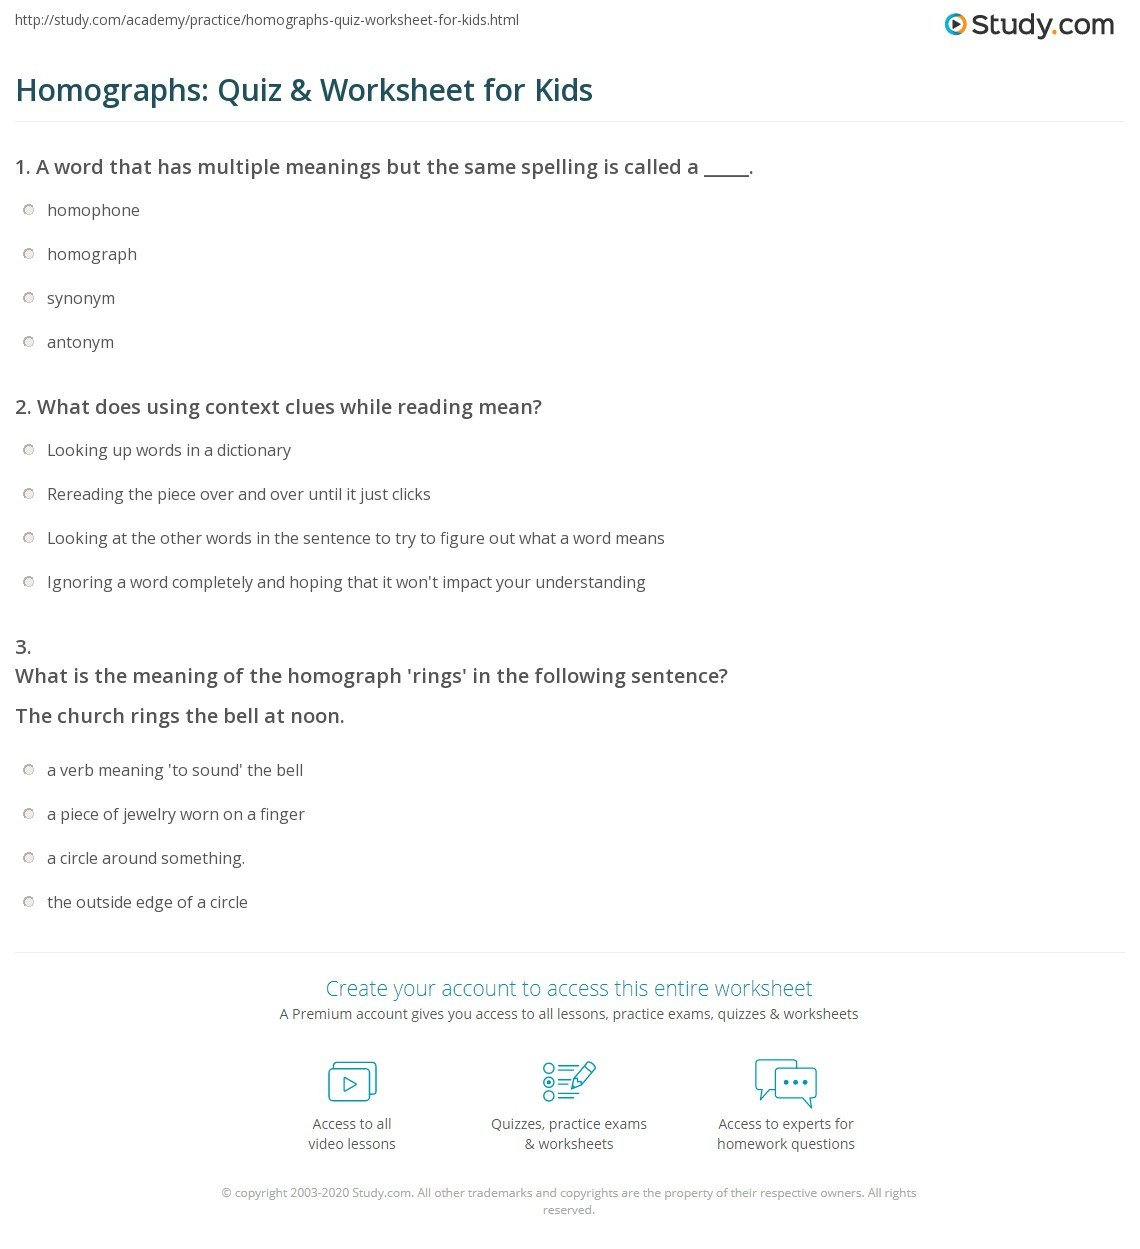 Homograph Worksheets 5th Grade Homographs Quiz & Worksheet for Kids